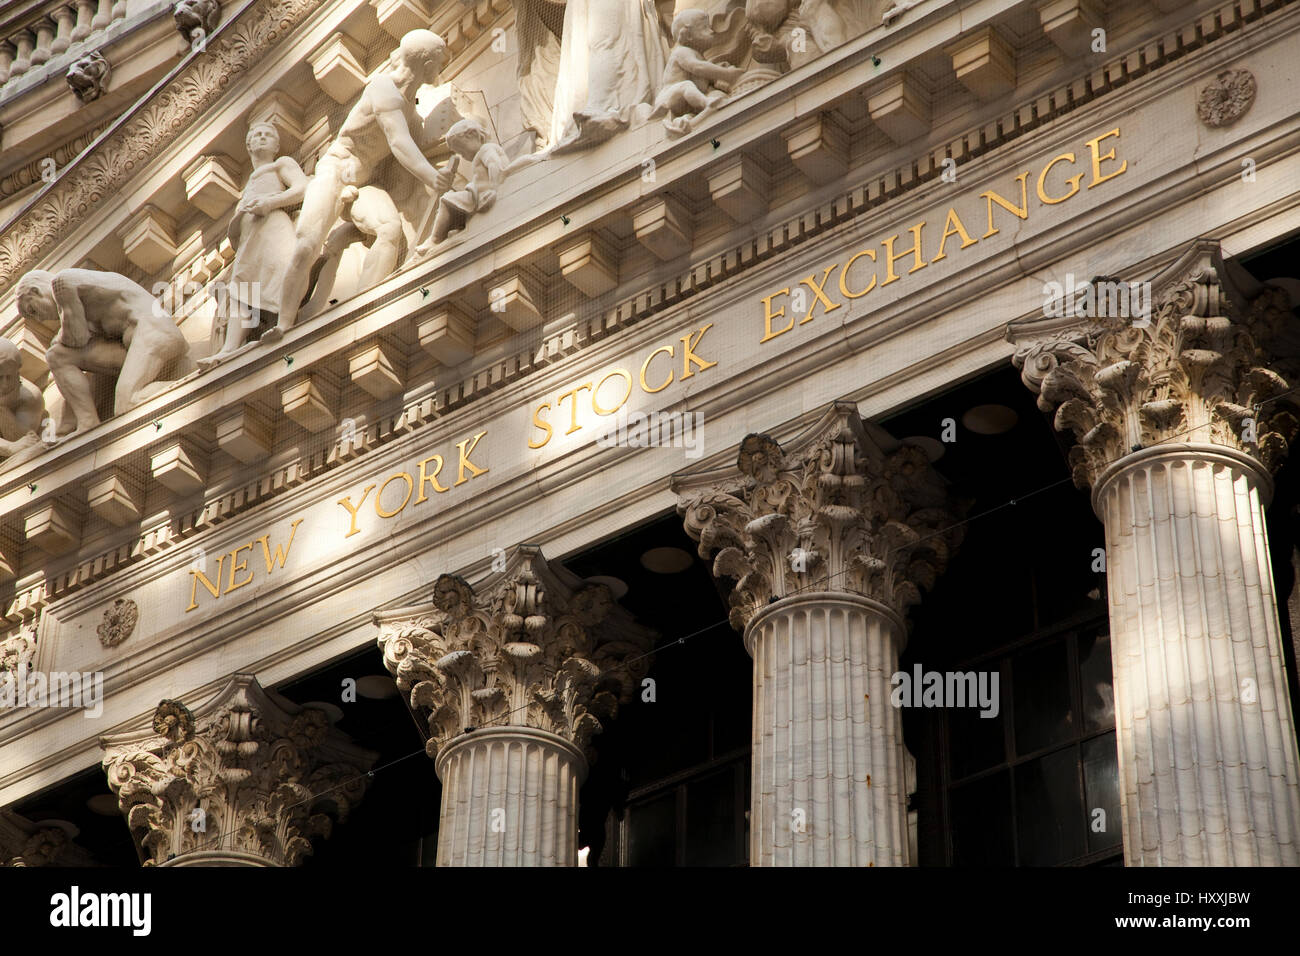 A View Of The Corinthian Columns And Entablature At New York Stock Exchange In City